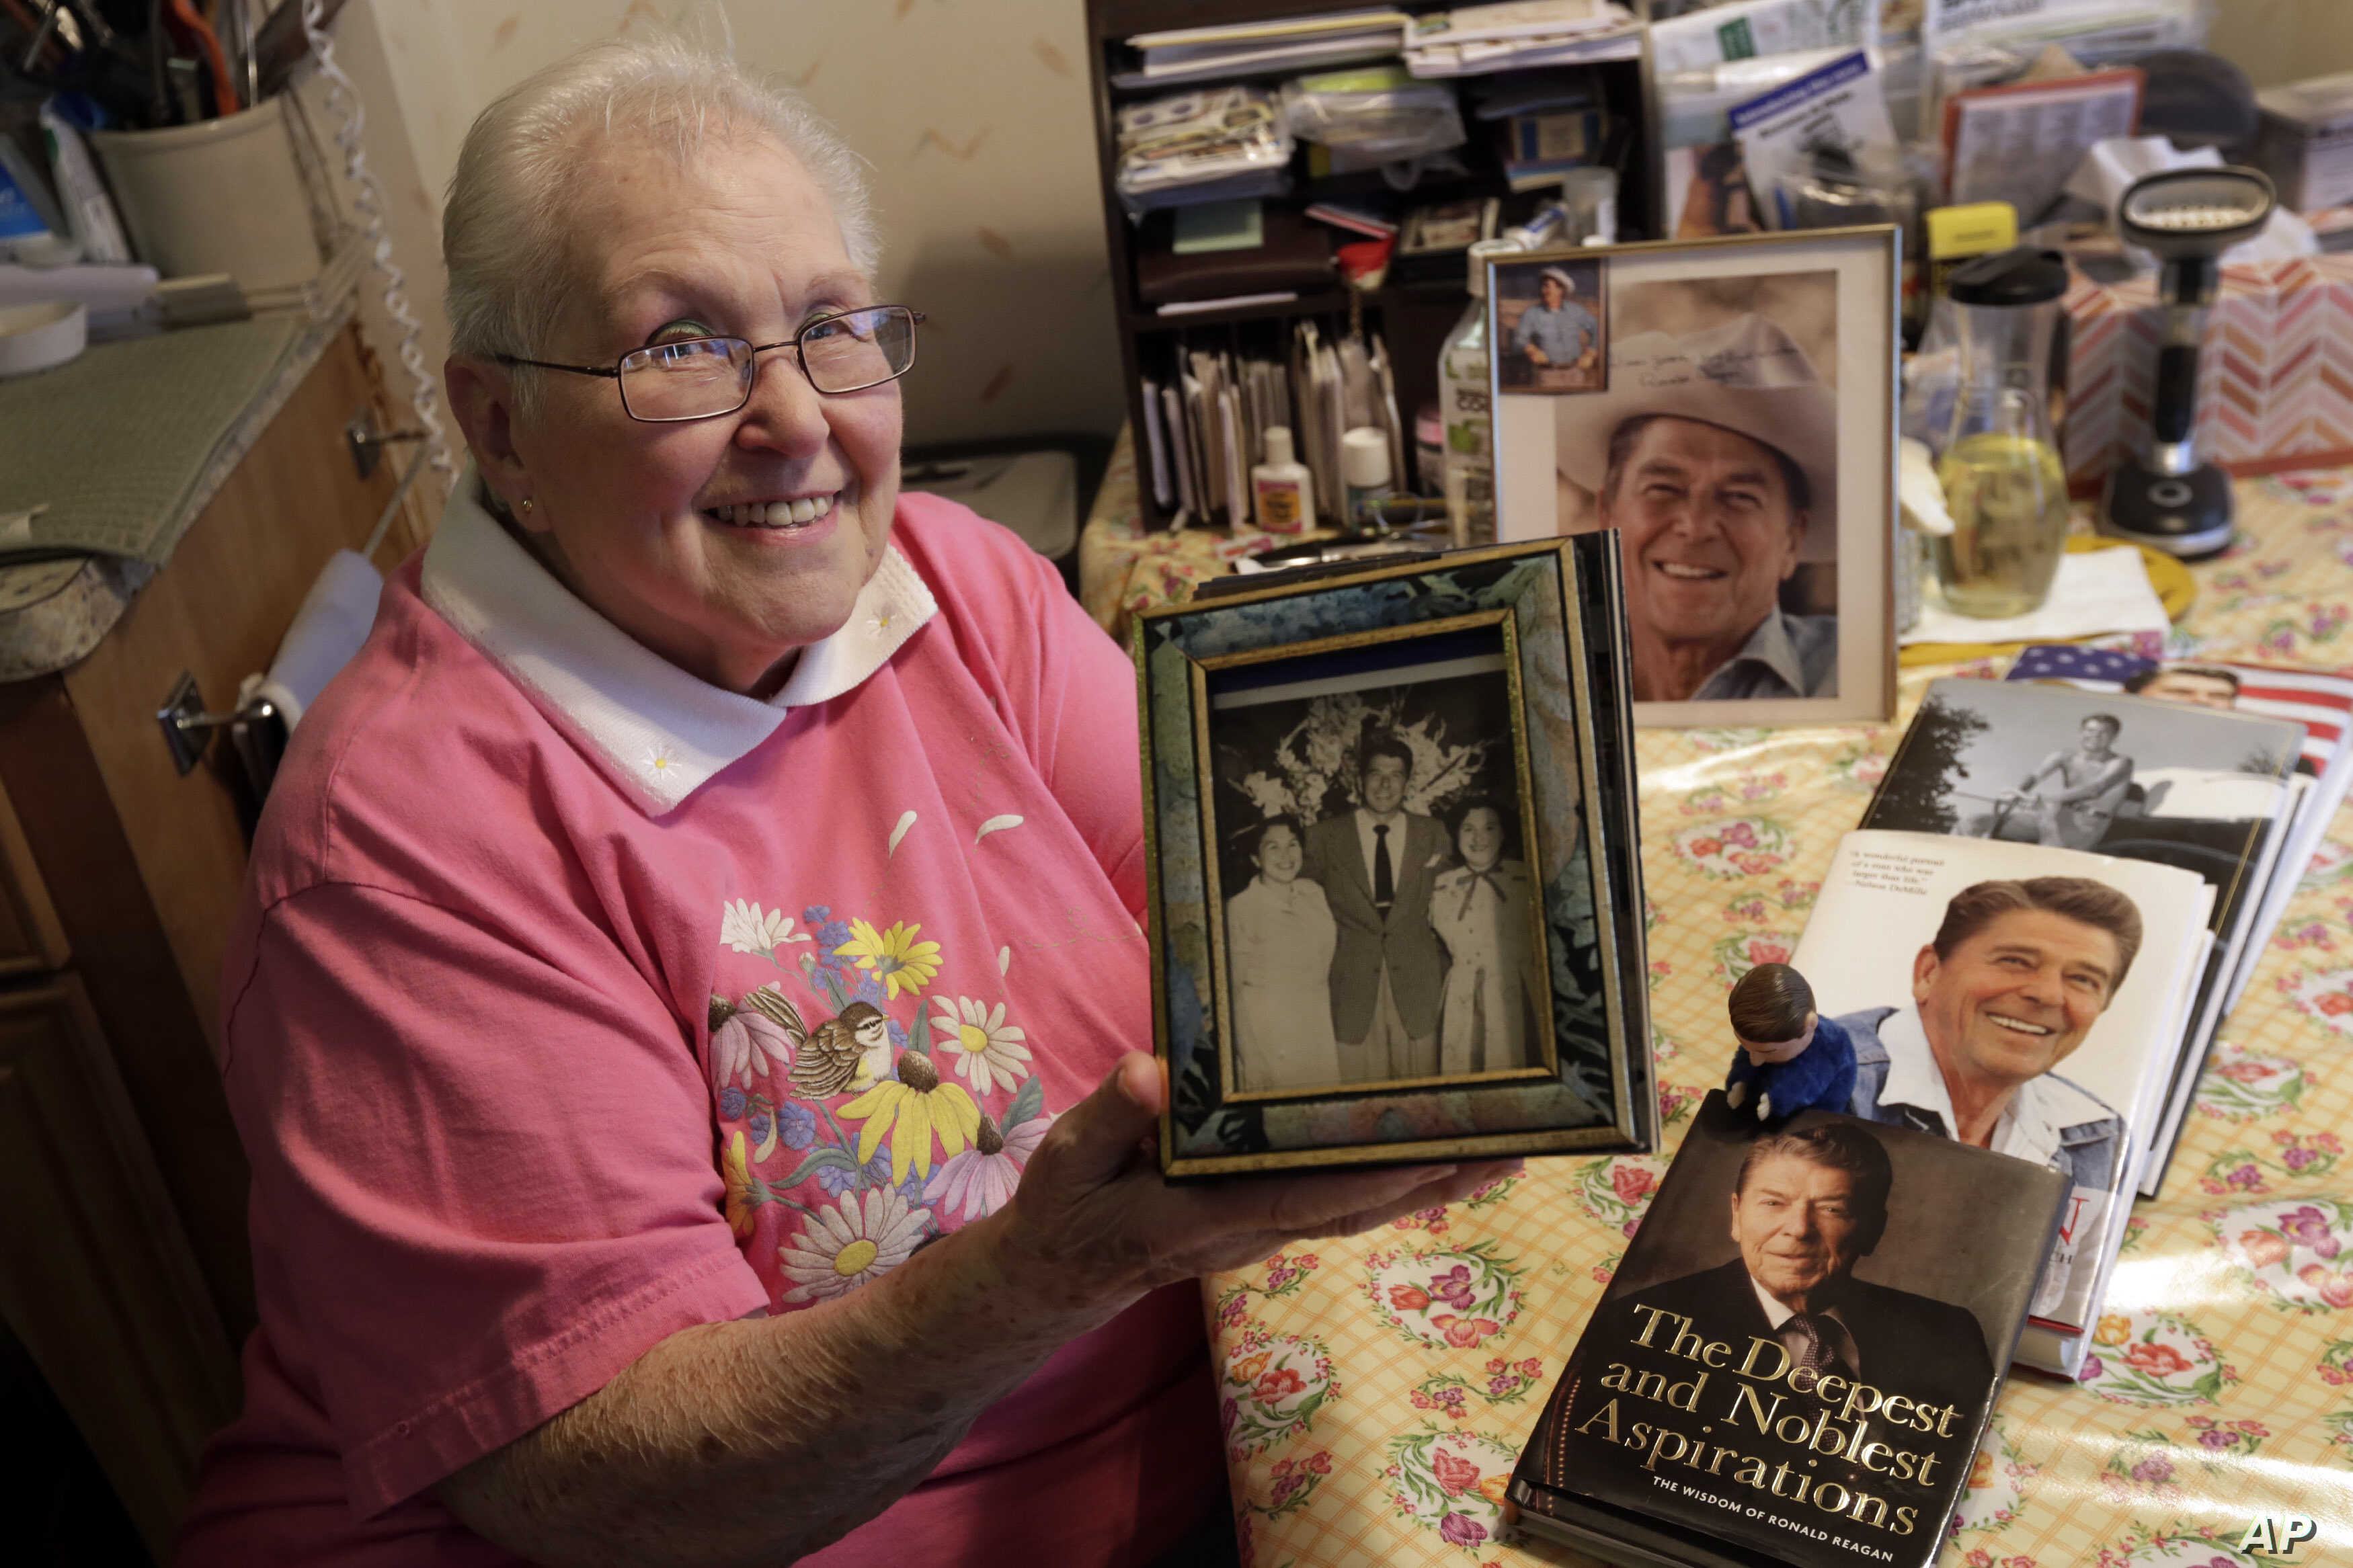 FILE - Former Ronald Reagan International Fan Club president Zelda Multz, 89, poses for photos with Reagan memorabilia in her apartment in the Brooklyn borough of New York, April 1, 2016.